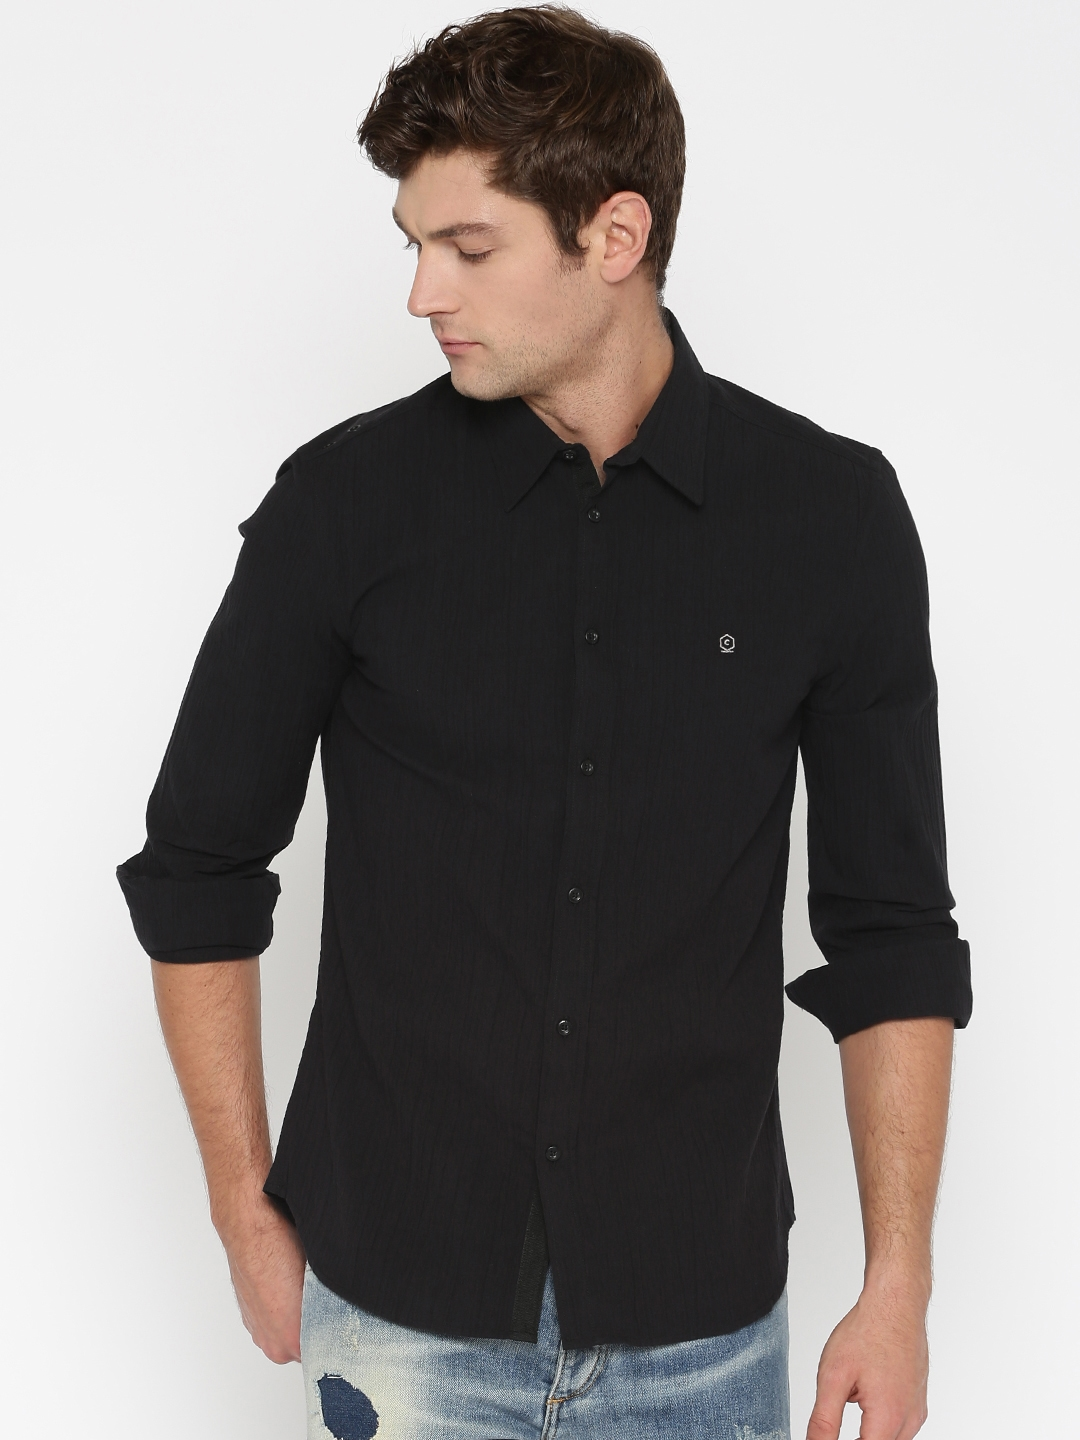 f598942dd98508 Buy Core By Jack & Jones Black Slim Fit Casual Shirt - Shirts for ...